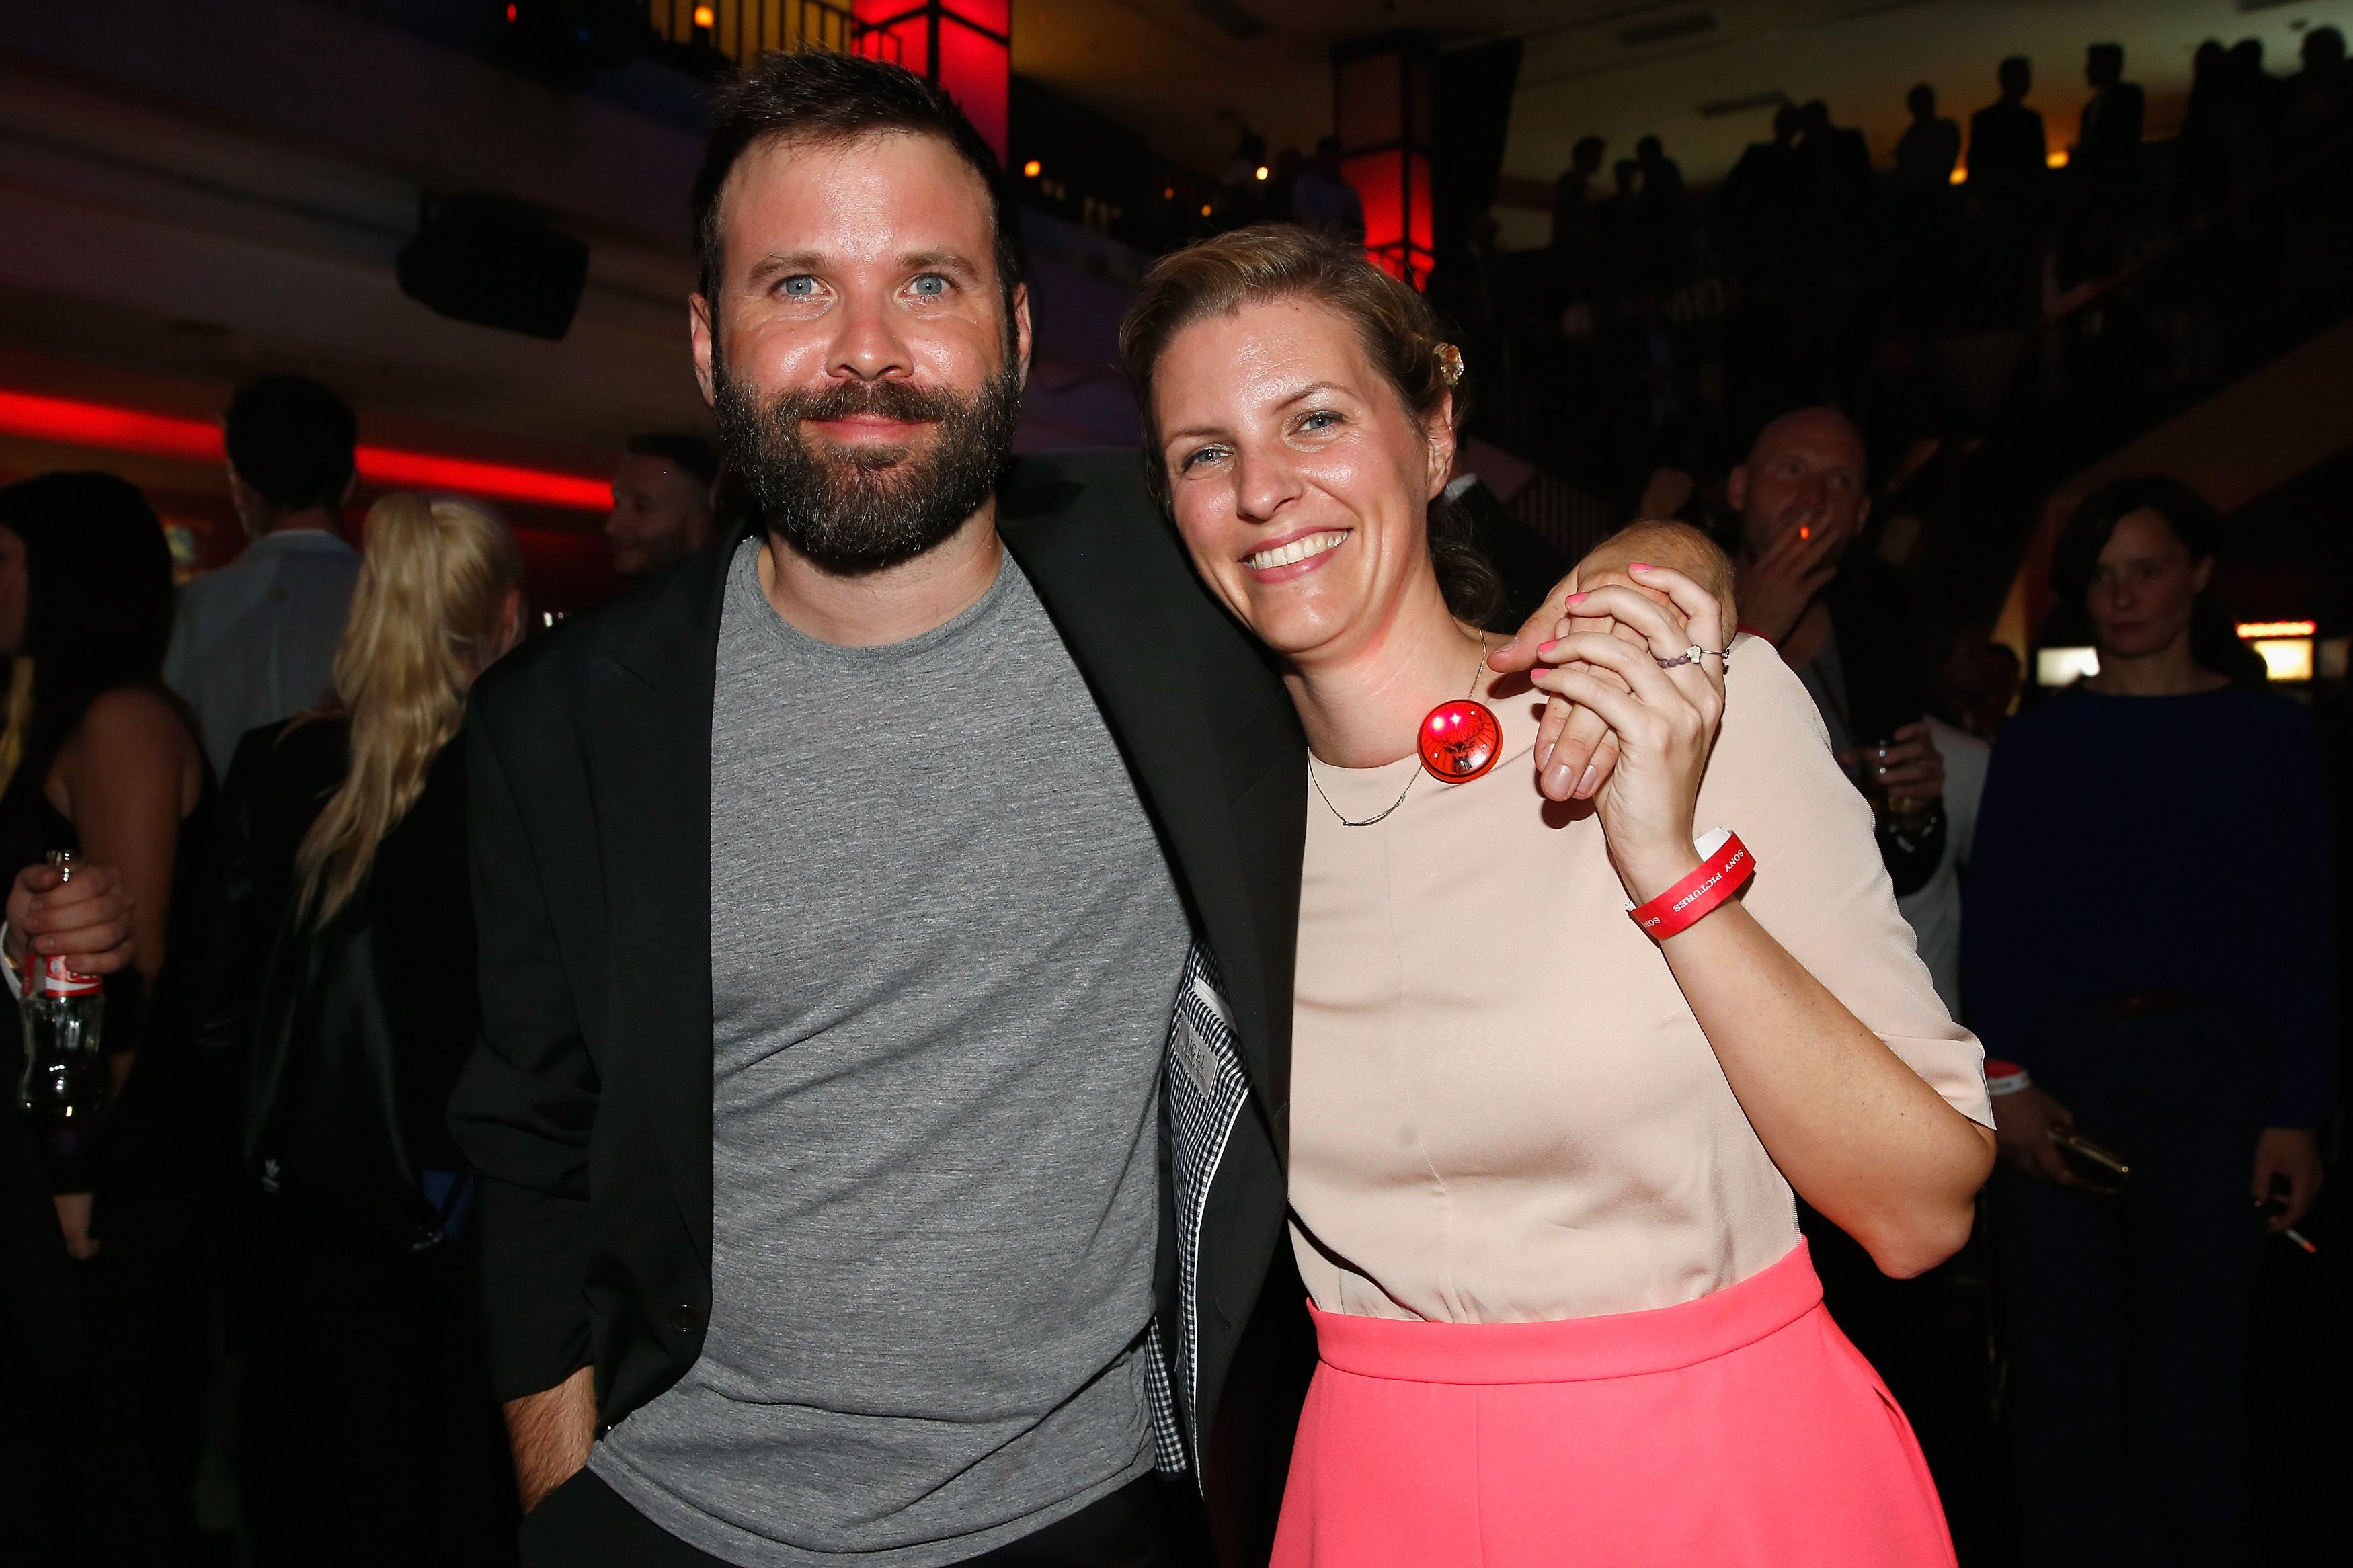 Baran bo Odar and Jantje Friese attend the 'Who am I' after premiere party in Berlin / Photo: Getty Images